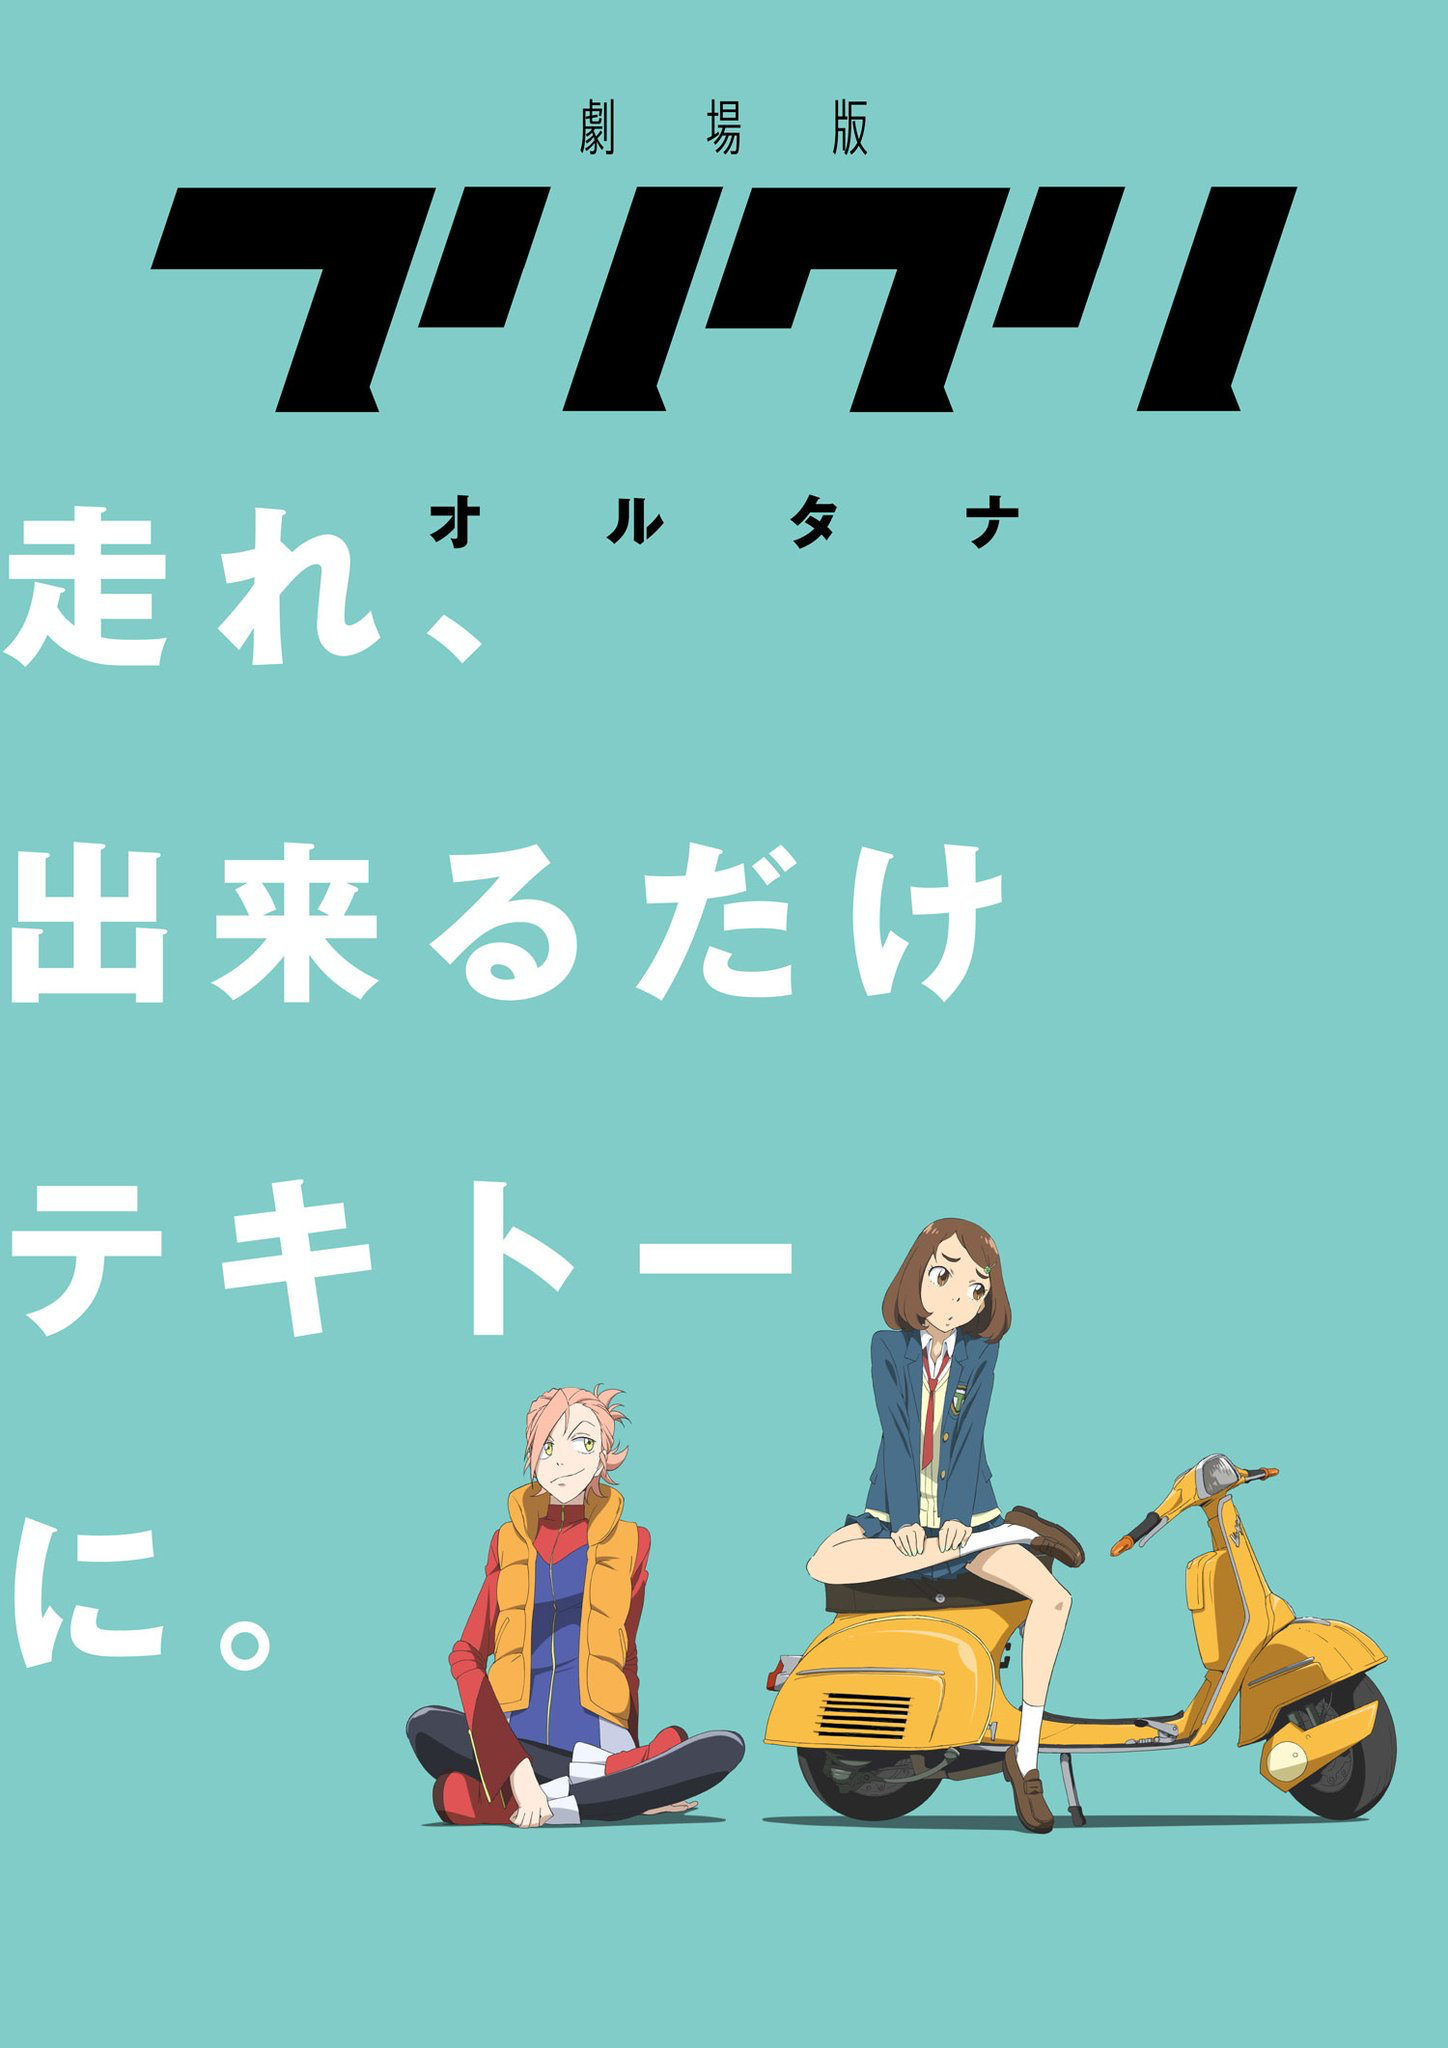 FLCL 2&3 Flcl, Anime movies, Anime reviews